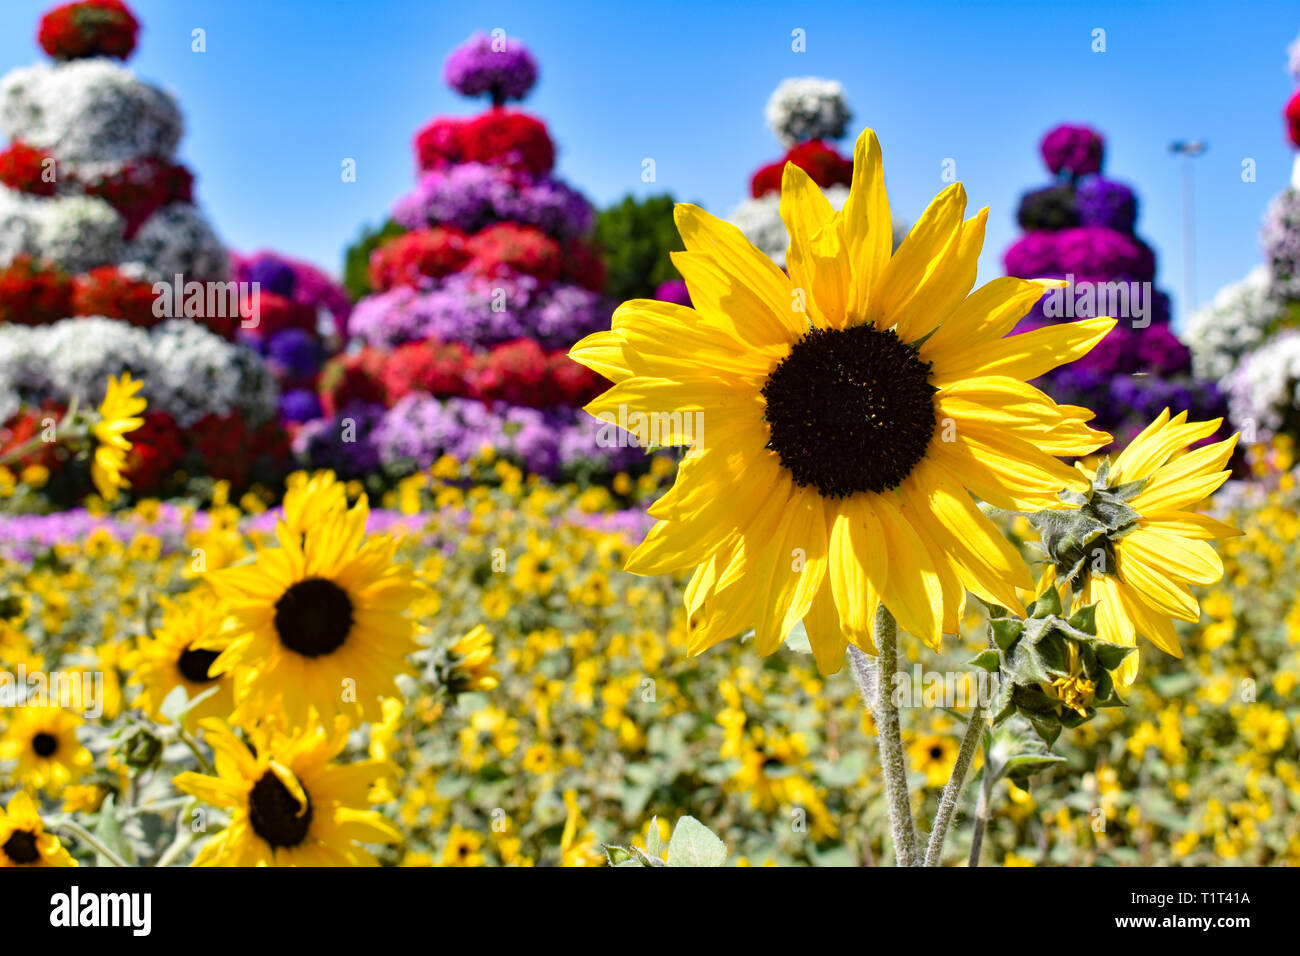 Miracle Sunflower - Stock Image